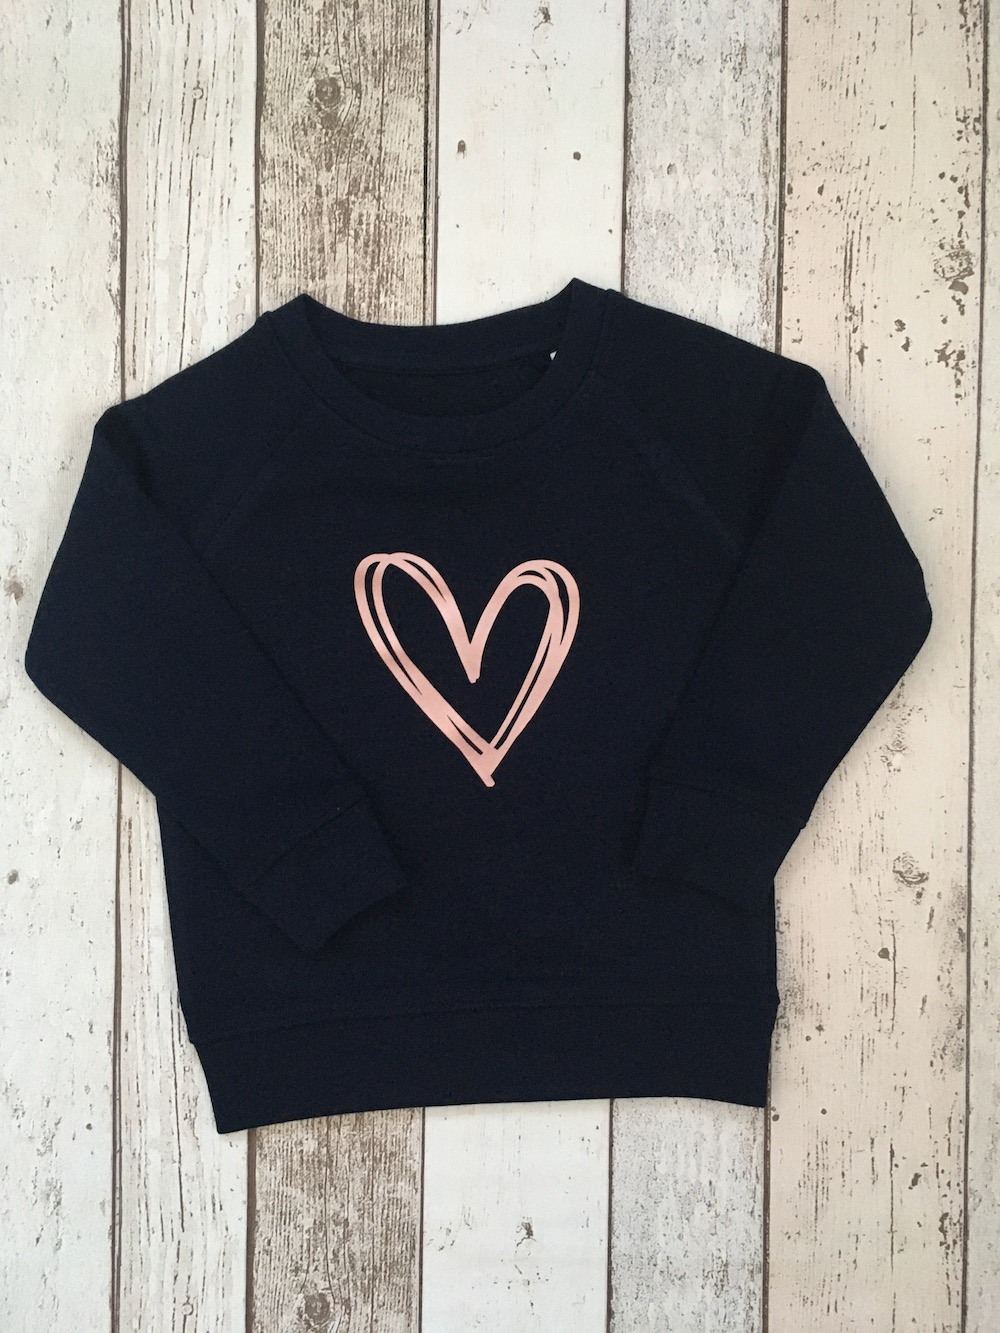 Signature Heart Super Soft Sweatshirt – Navy Rose Gold